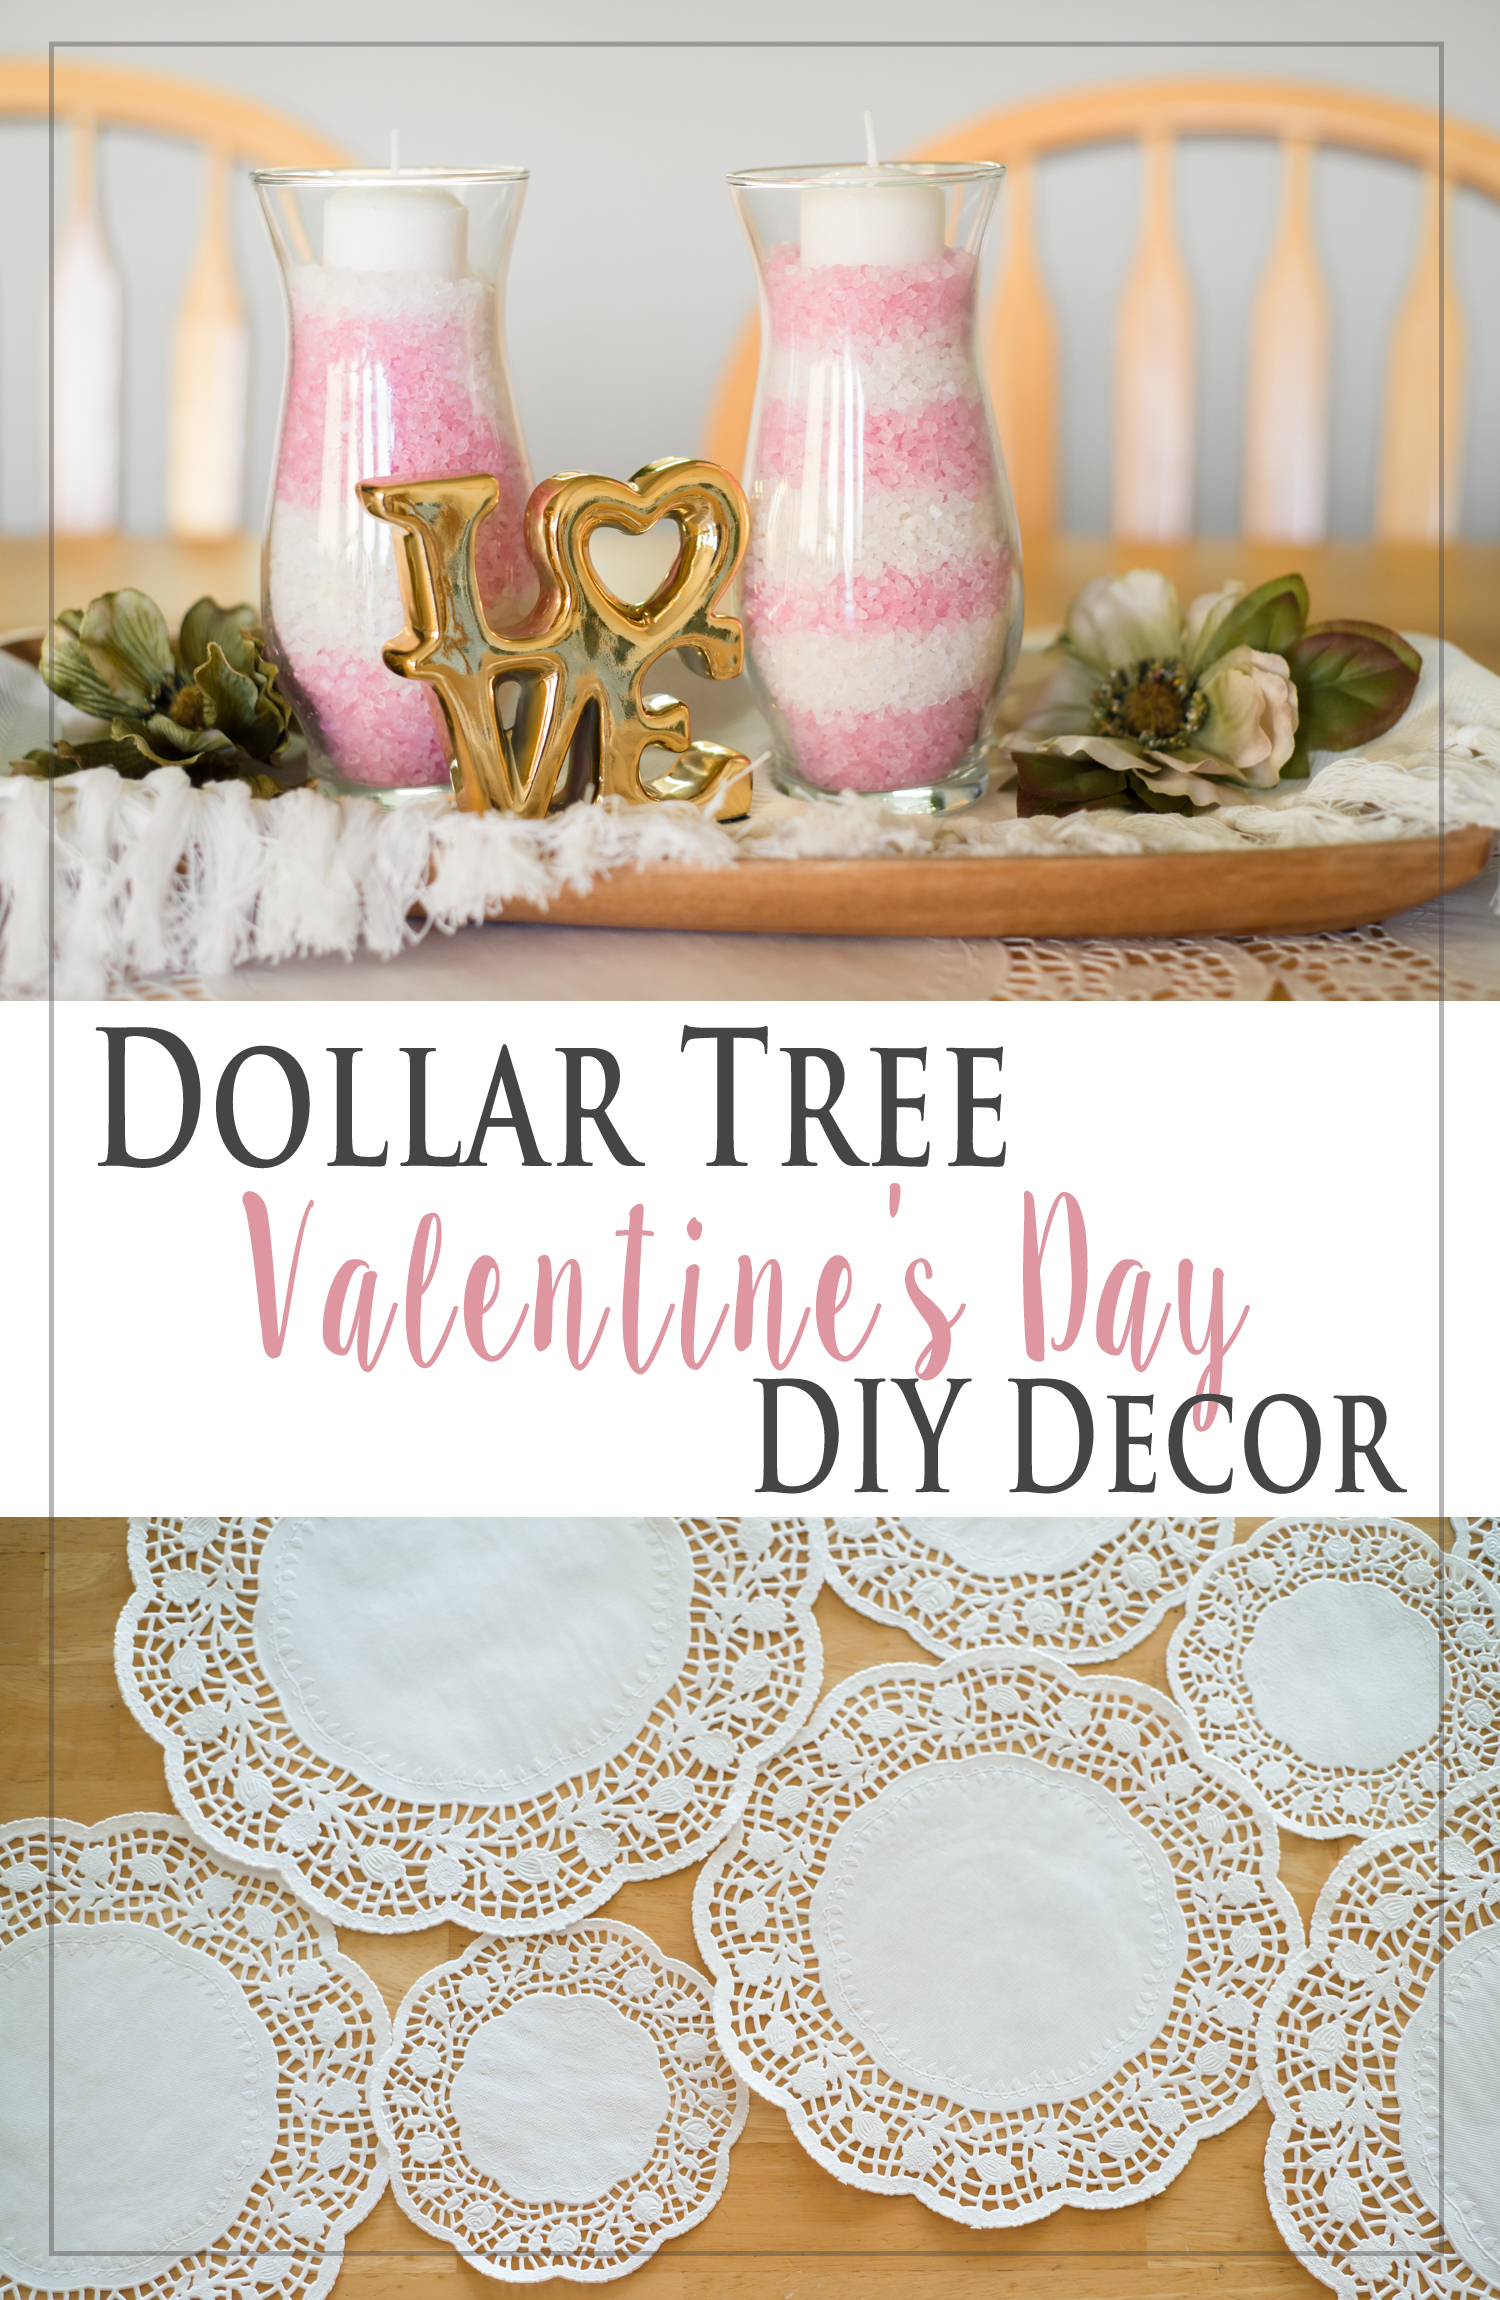 Easy Dollar Tree Valentine's Day DIY Decor Ideas